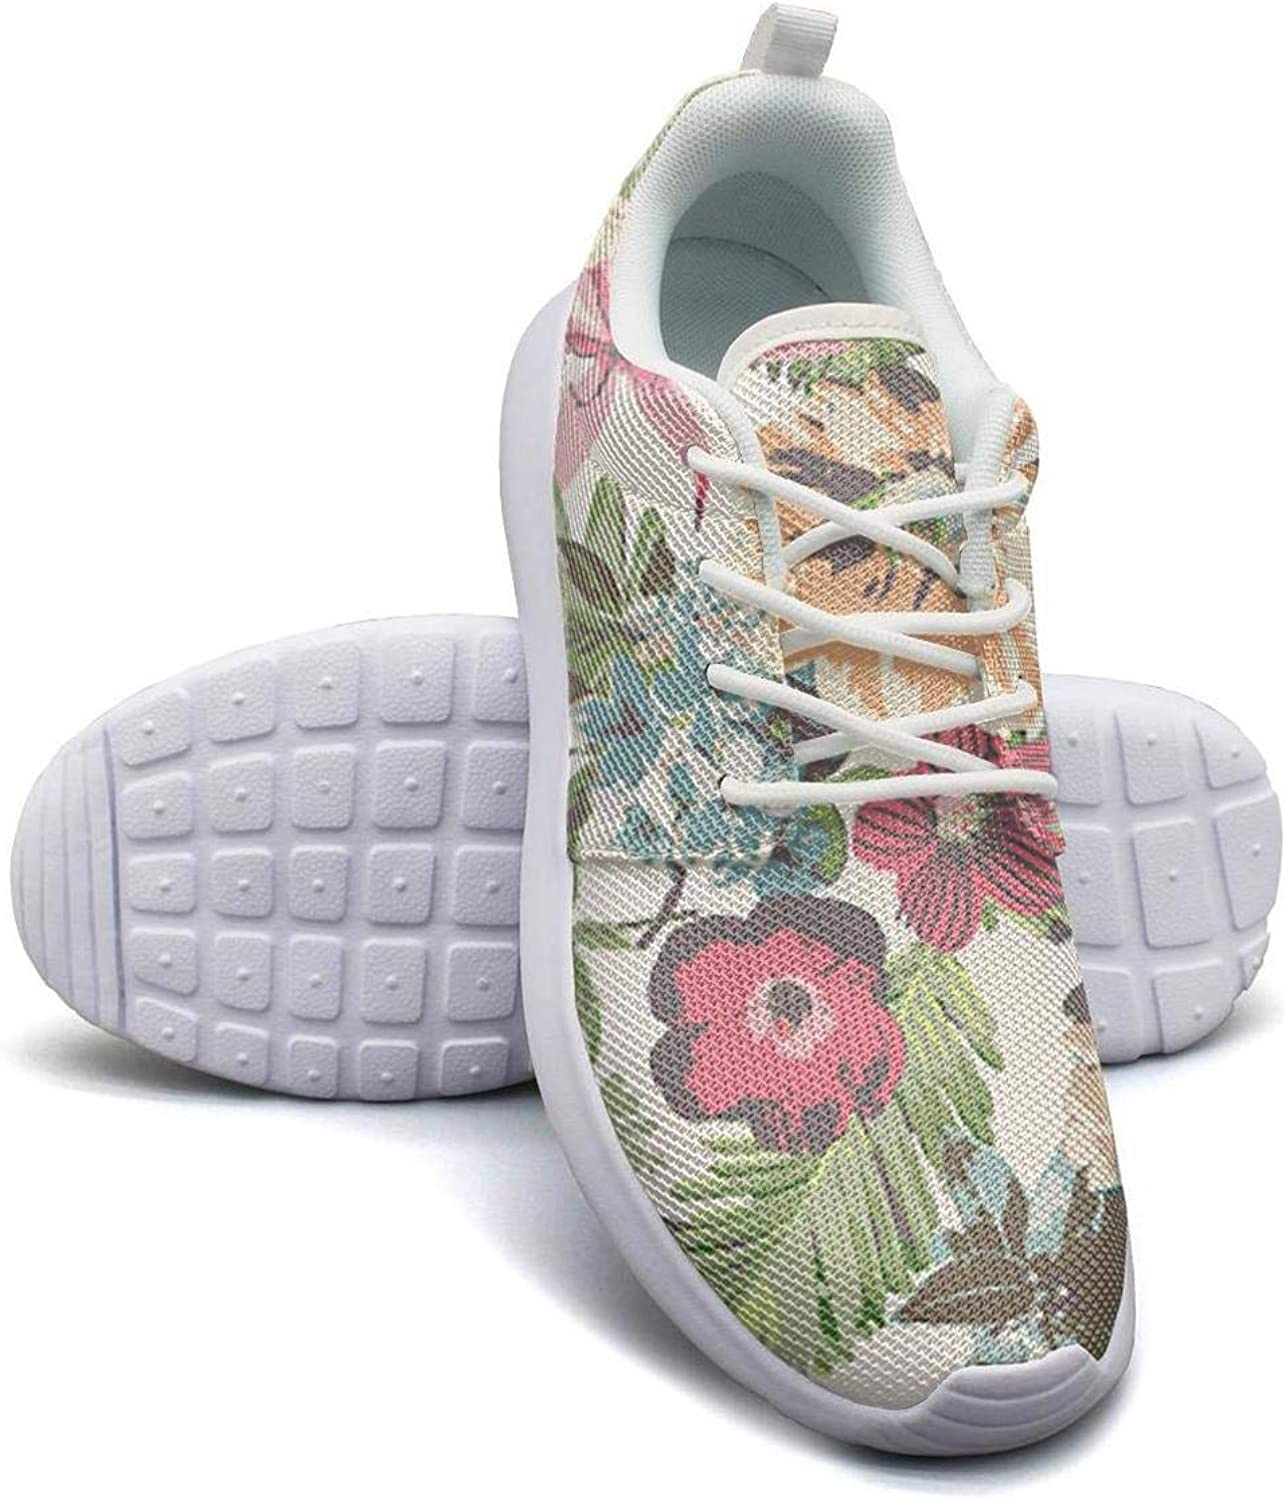 CHALi99 Casual Womens Lightweight Mesh shoes Tropical Floral Flowers Sneakers Trail Running Rubber Sole